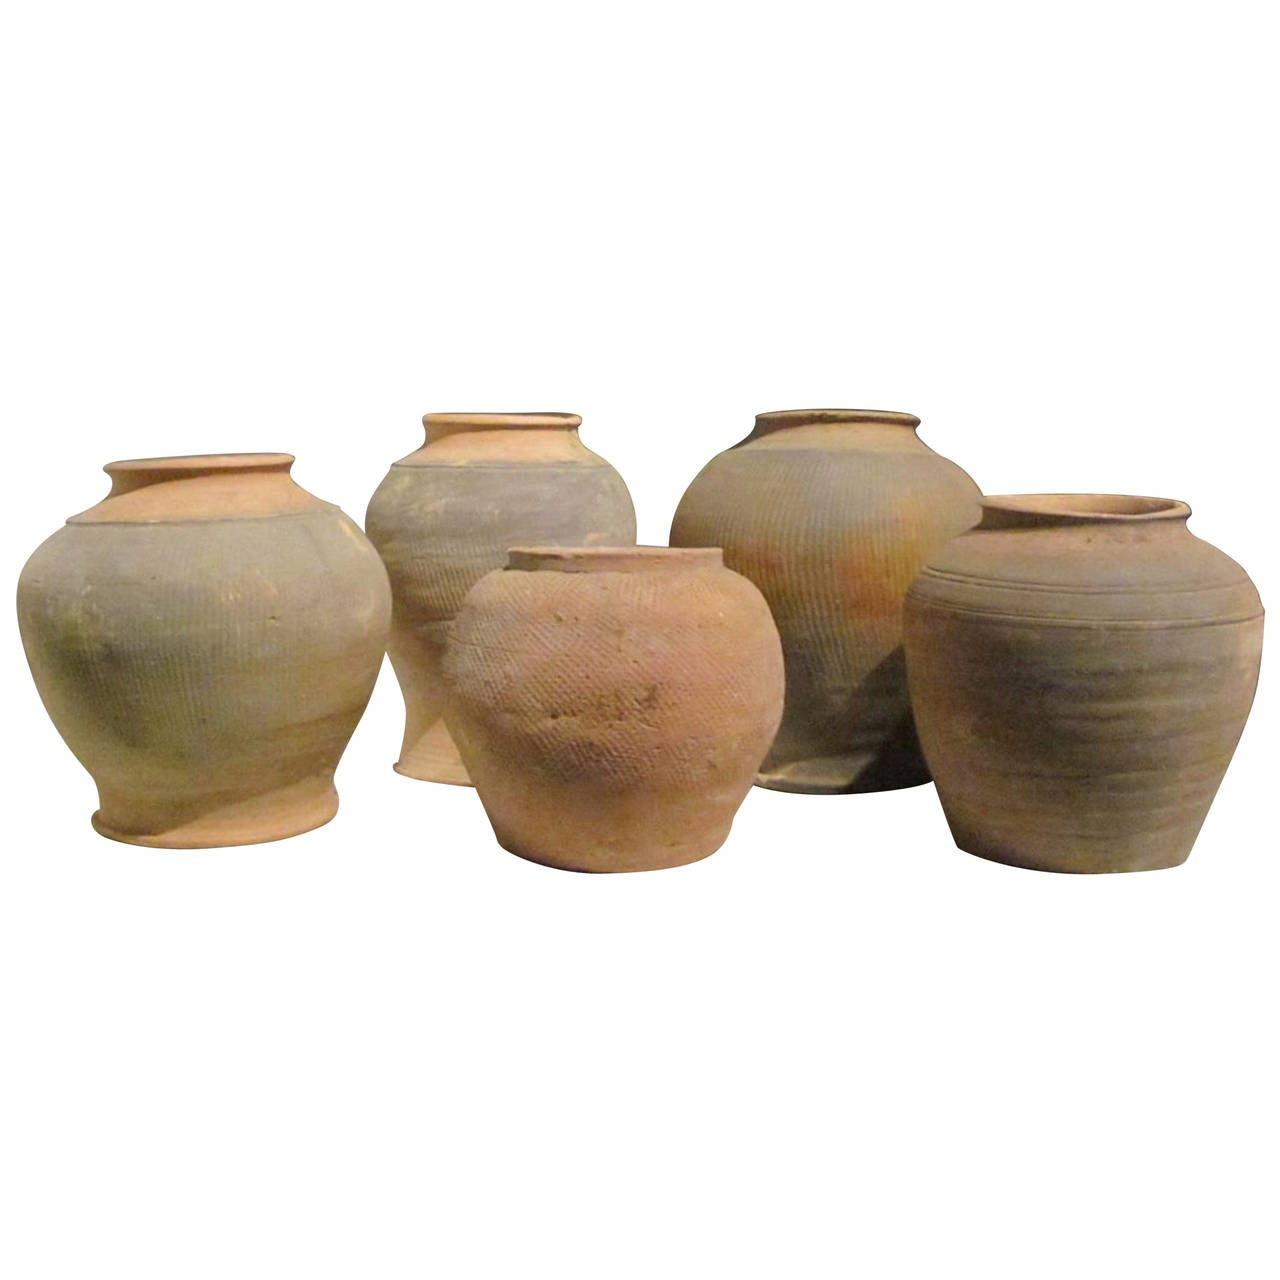 Textured Terra Cotta Pots, North Vietnam, 19th Century For Sale